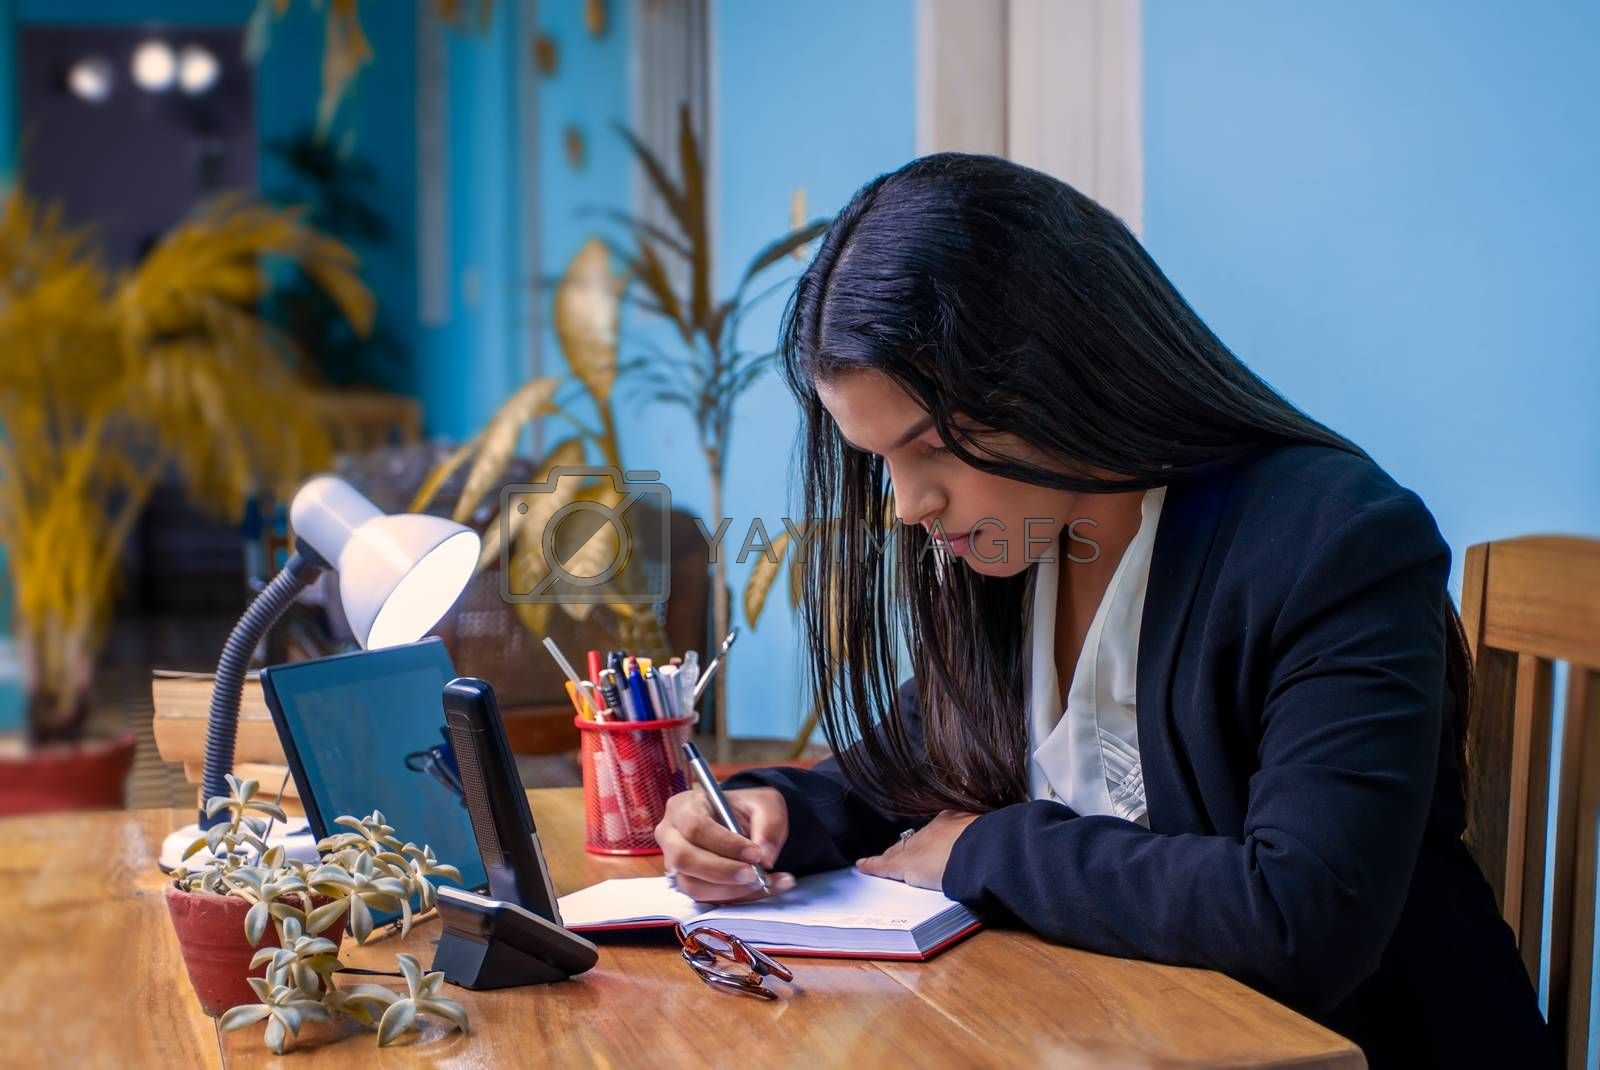 Young woman with long black hair at a desk writing in a notebook.